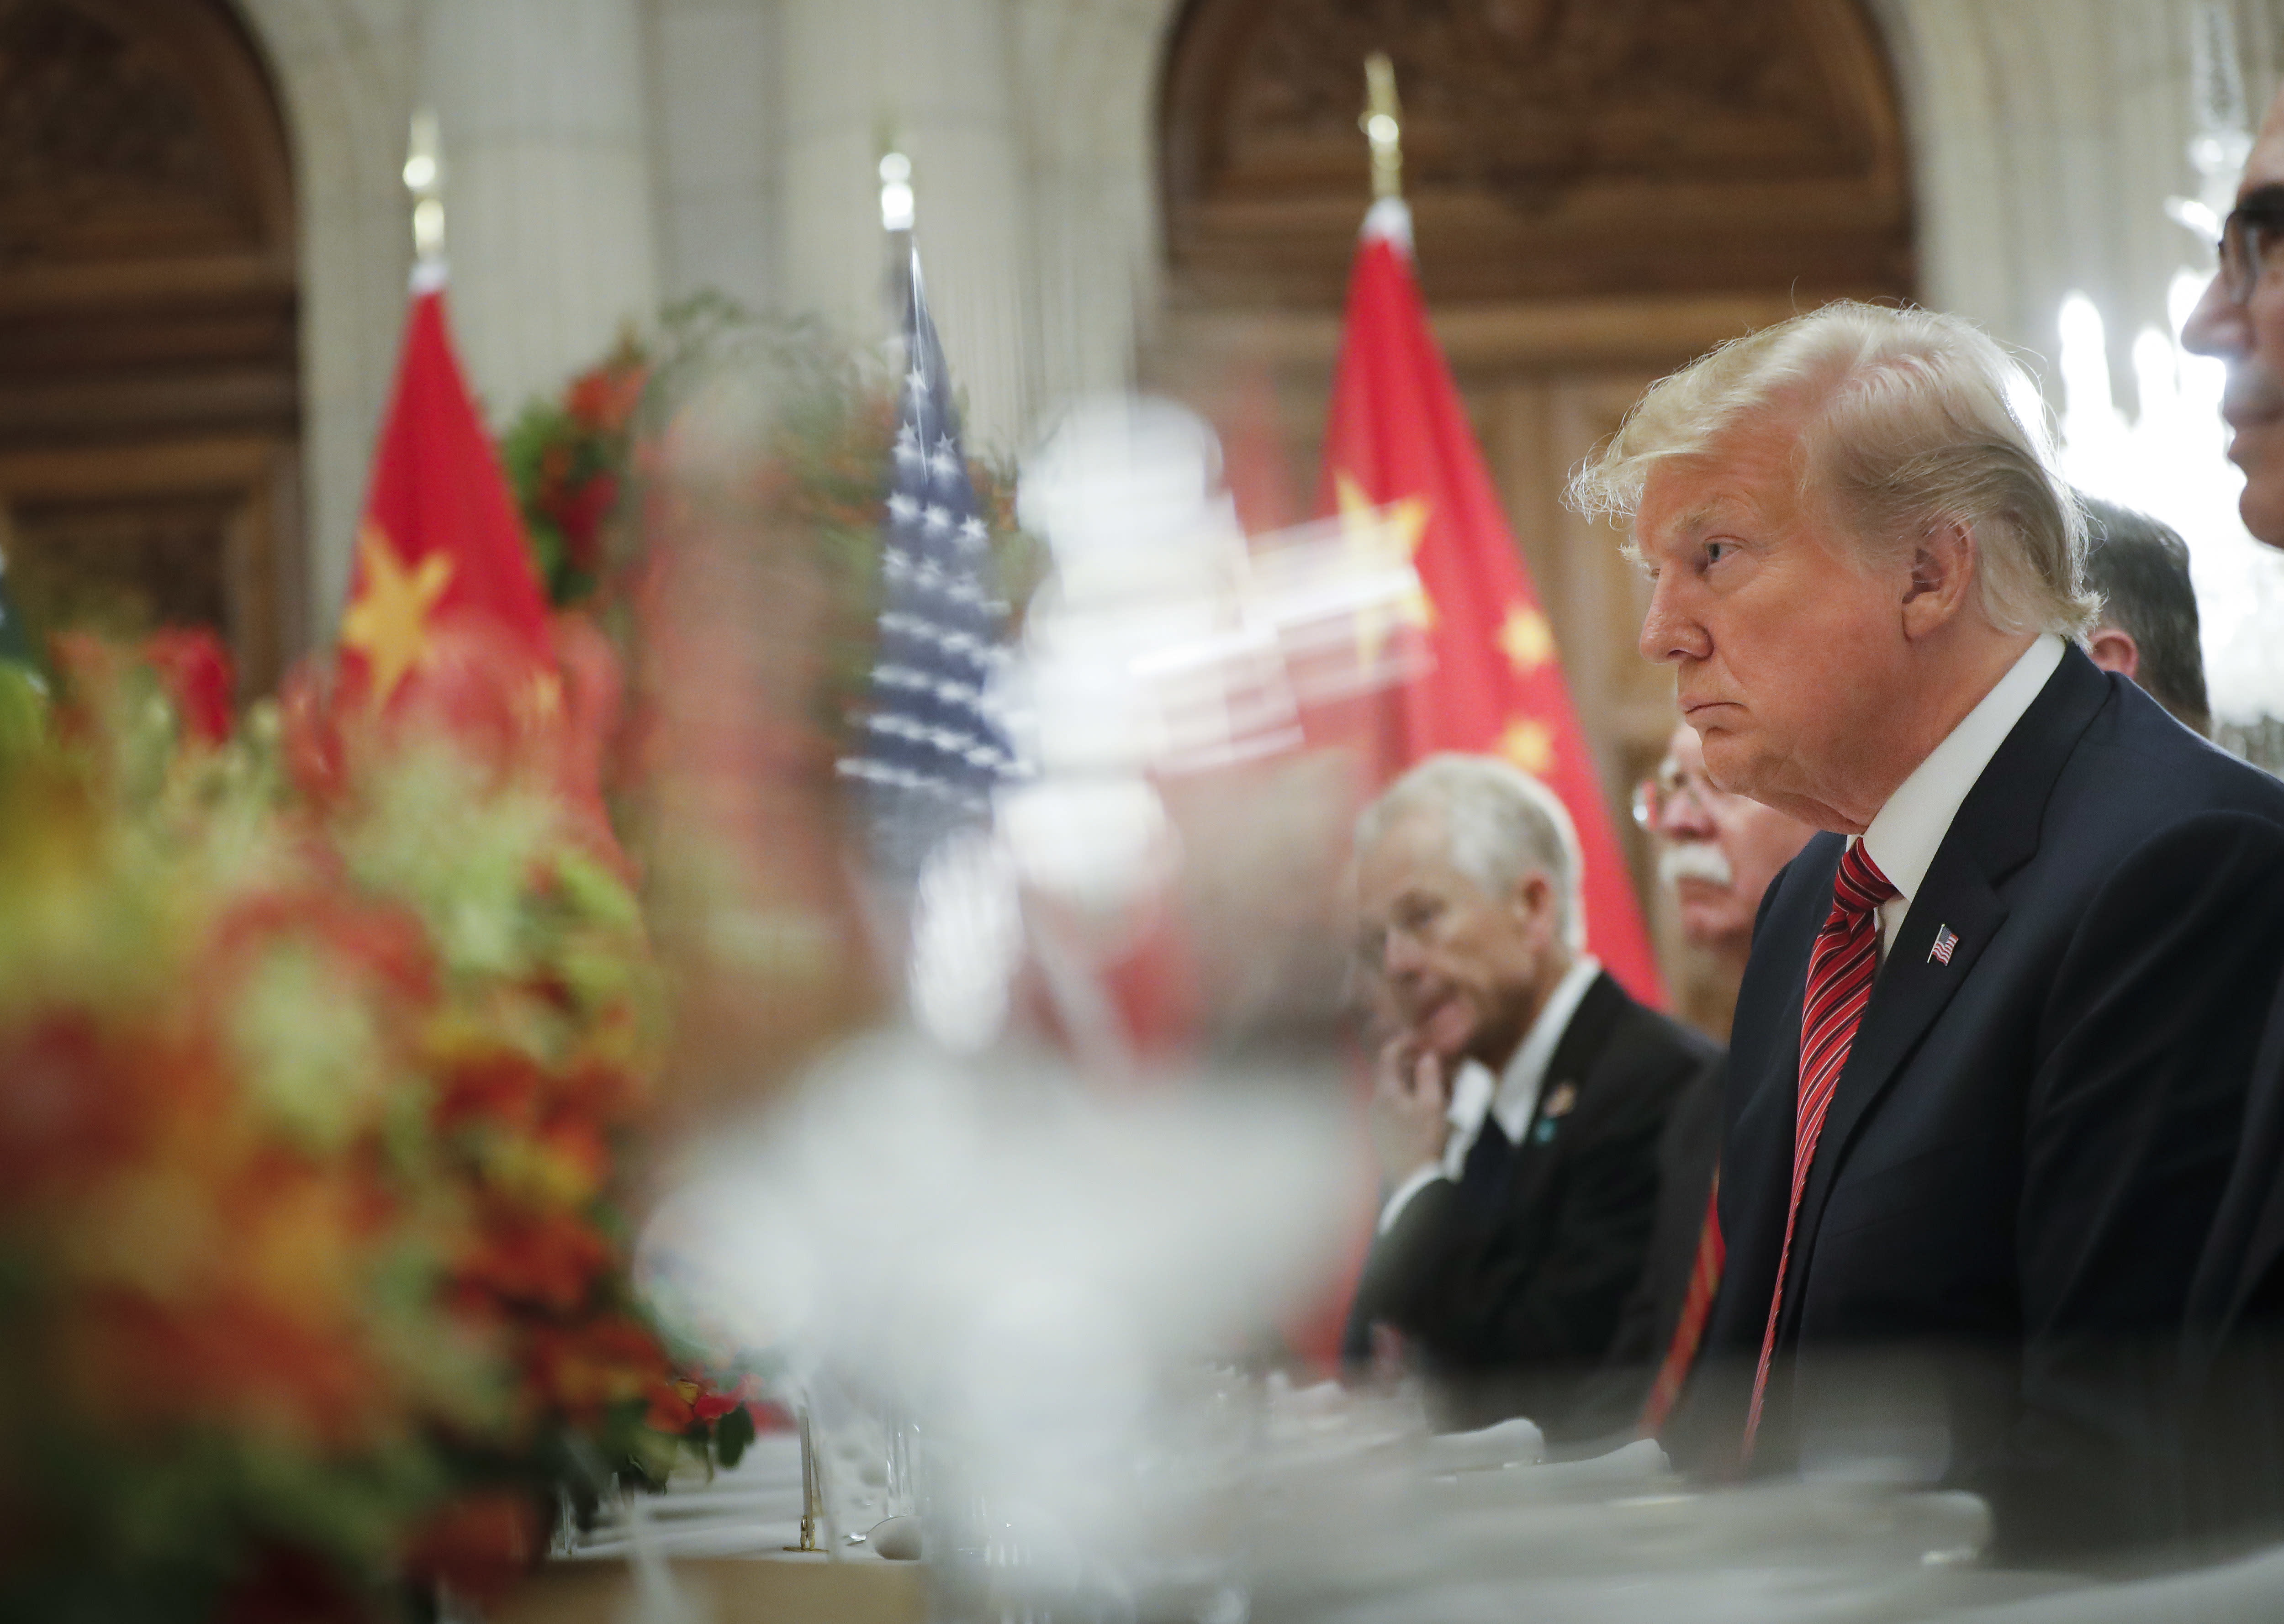 President Donald Trump listens to China's President Xi Jinping speak during their bilateral meeting at the G20 Summit, Saturday, Dec. 1, 2018 in Buenos Aires, Argentina. (AP Photo/Pablo Martinez Monsivais)